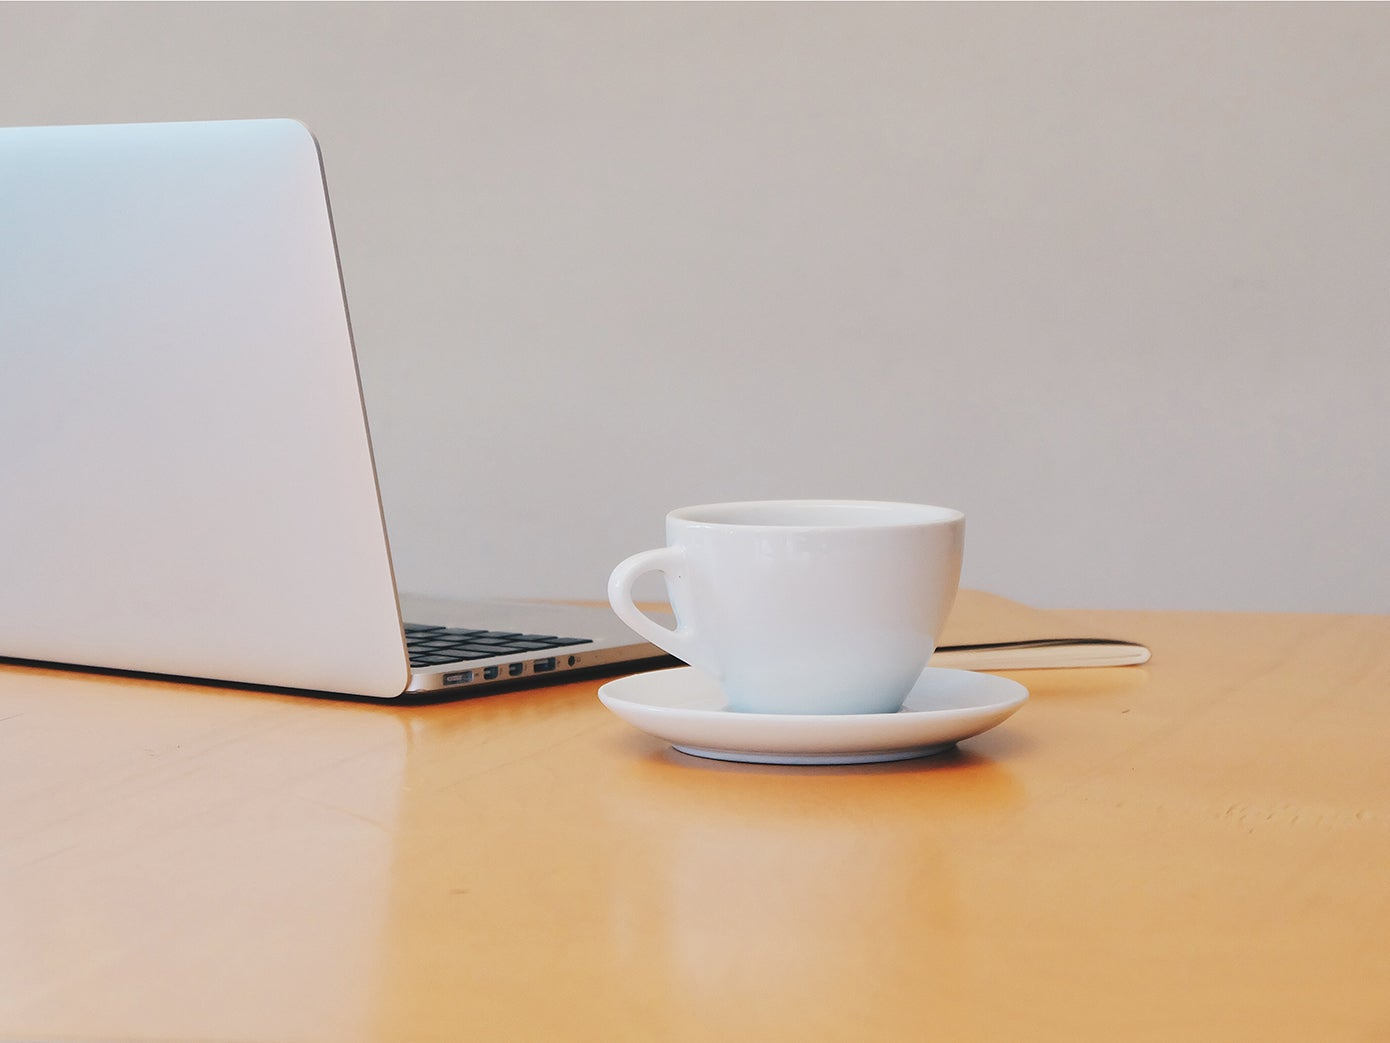 Image of laptop and coffee cup